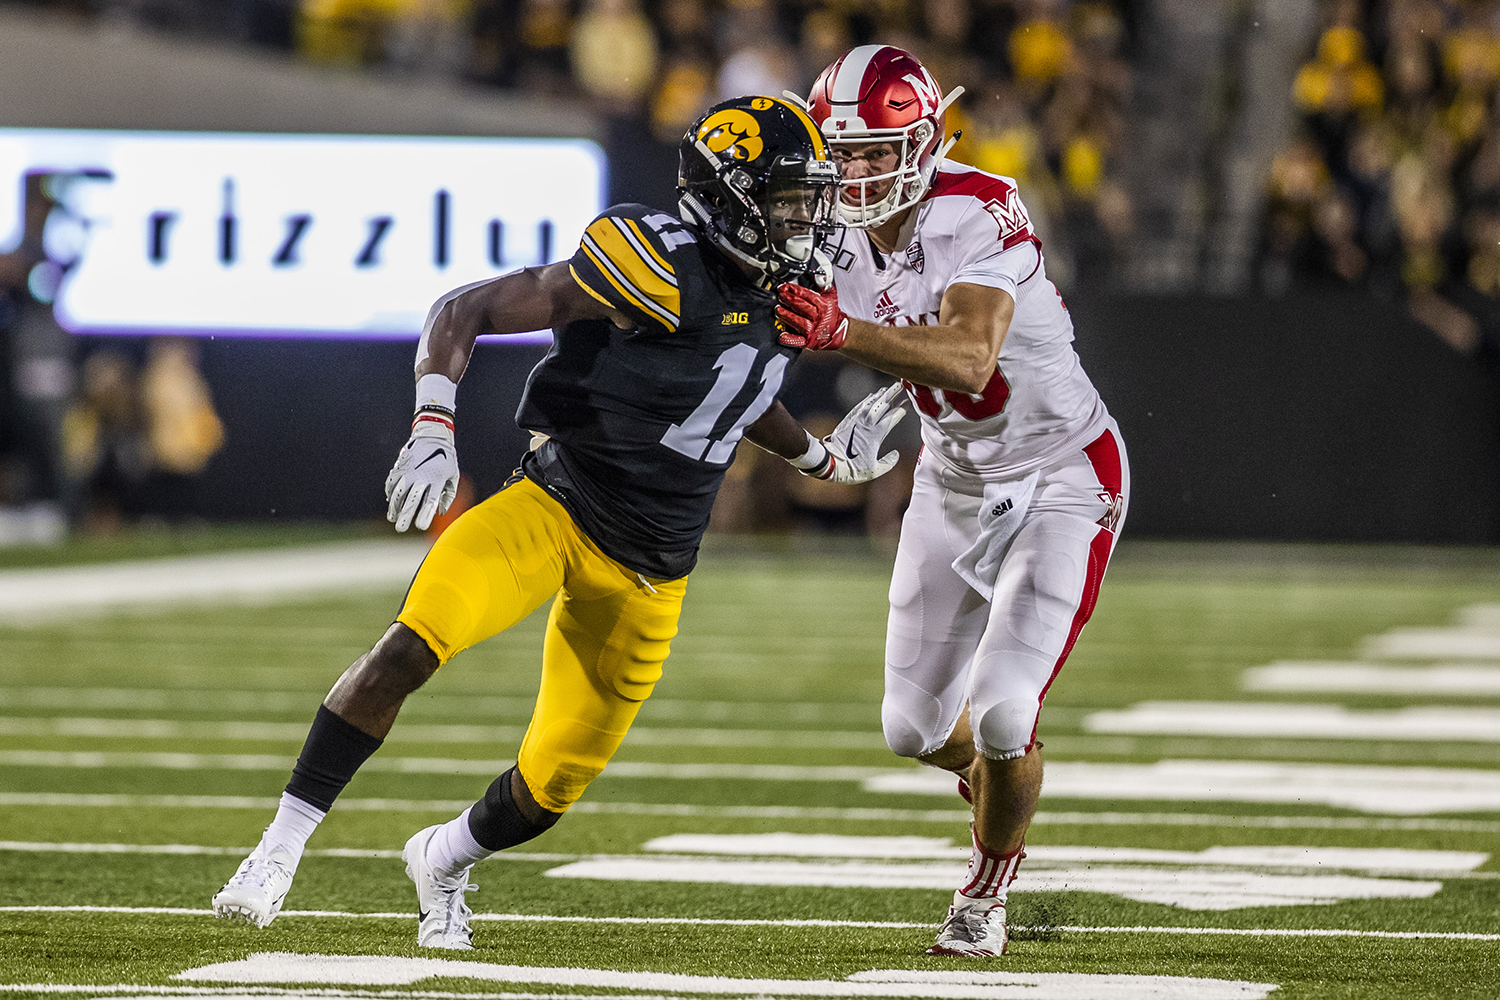 Iowa+defensive+back+Michael+Ojemudia+watches+a+play+during+the+Iowa+football+game+against+Miami+%28Ohio%29+at+Kinnick+Stadium+on+Saturday%2C+August+31%2C+2019.+The+Hawkeyes+defeated+the+Redhawks+38-14.